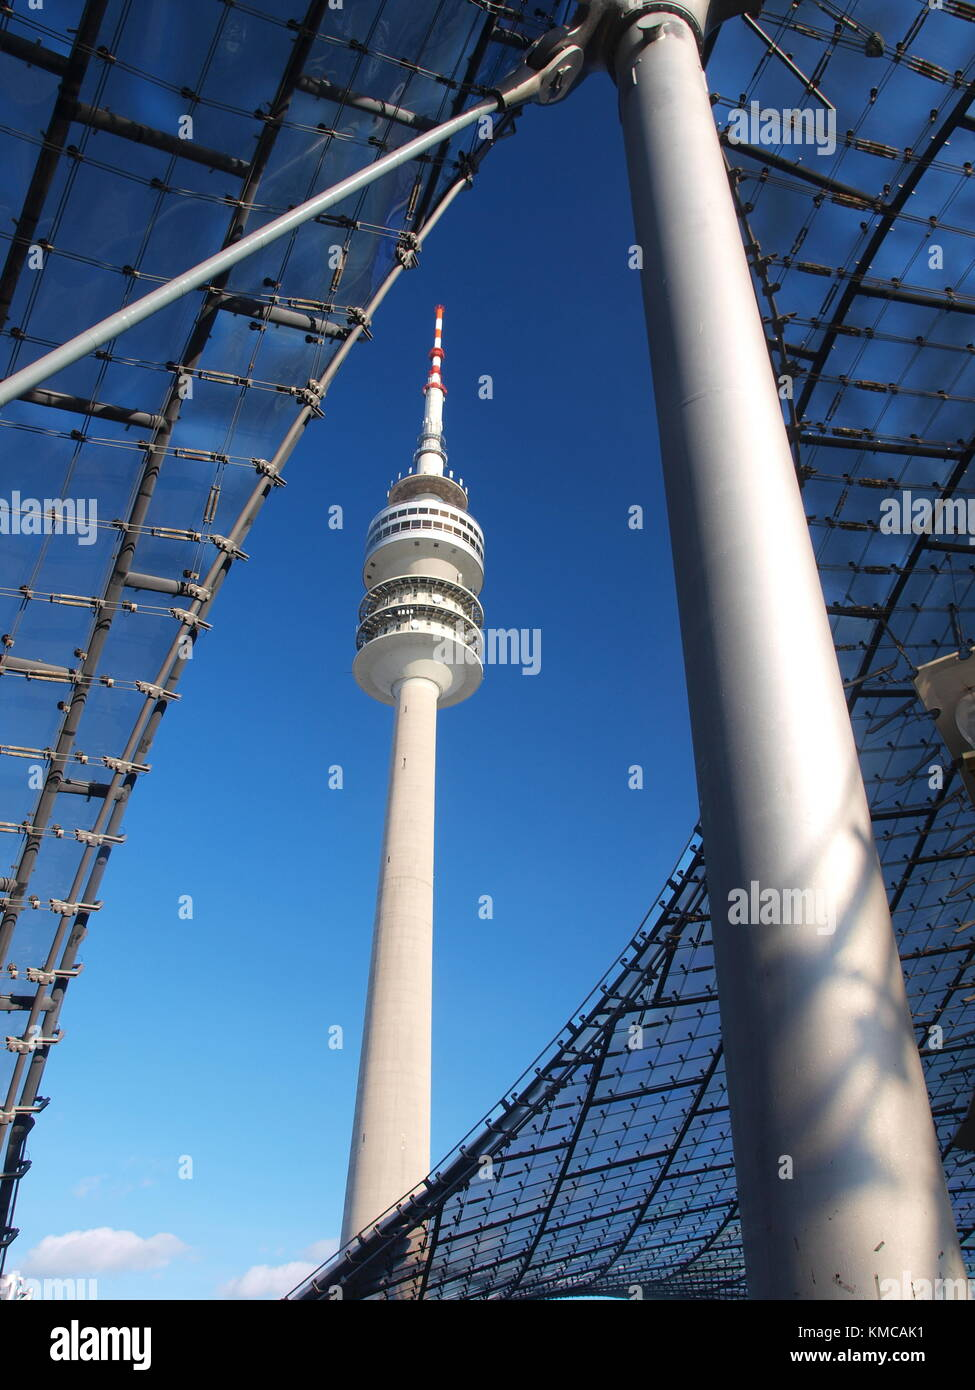 Olympic Tower, Olympic Park, Munich - Stock Image